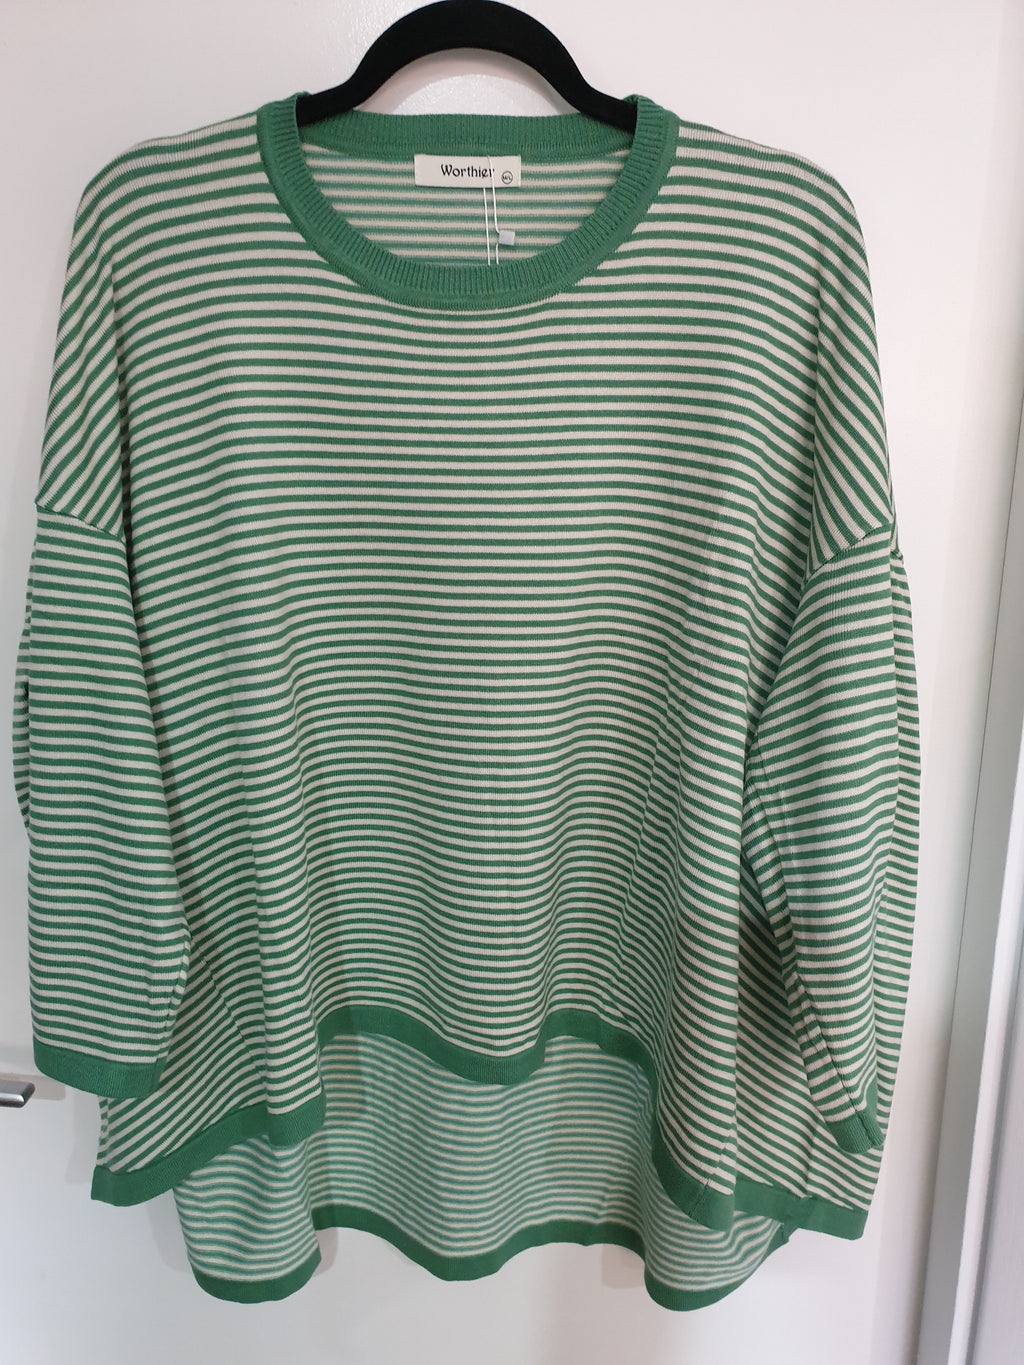 Worthier Mint Green Striped Knit